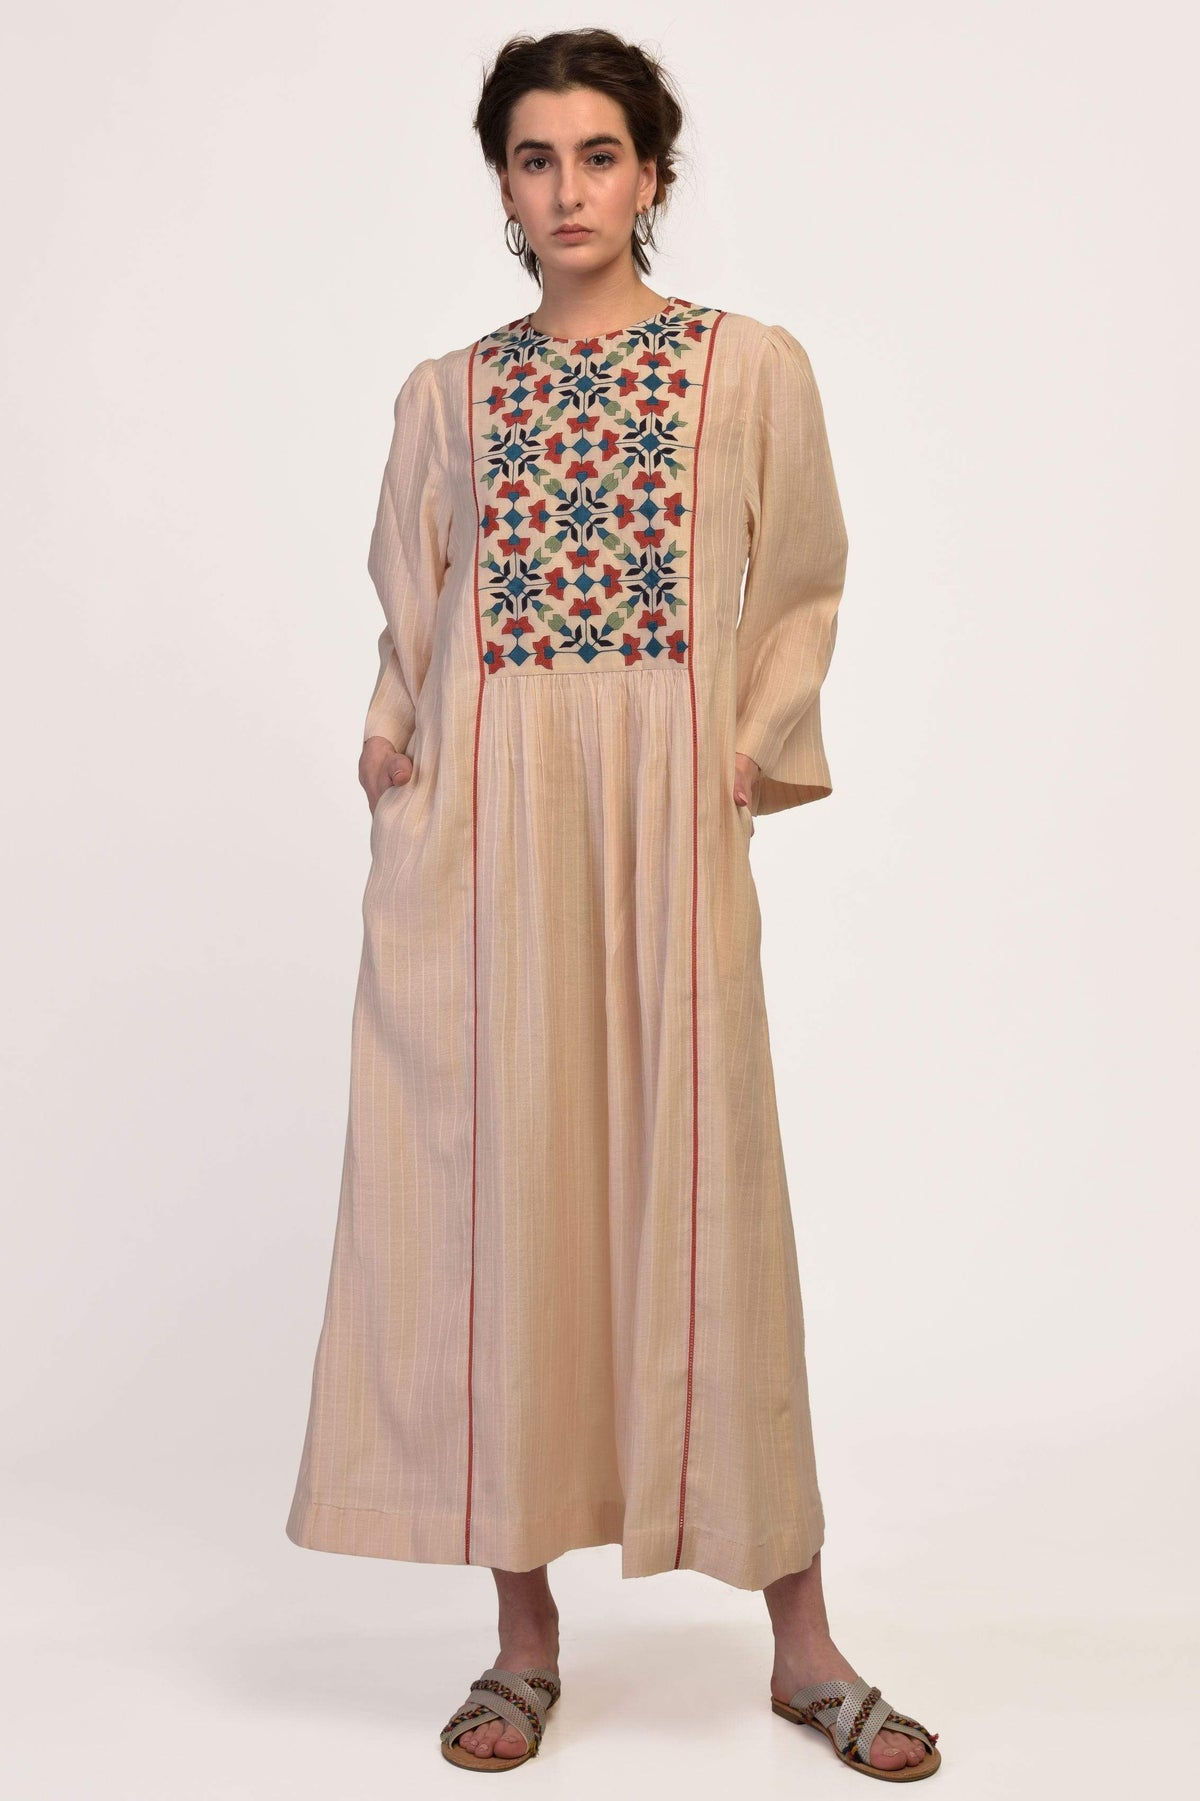 Ikai by Ragini Ahuja Dresses Yoke gather dress in beige